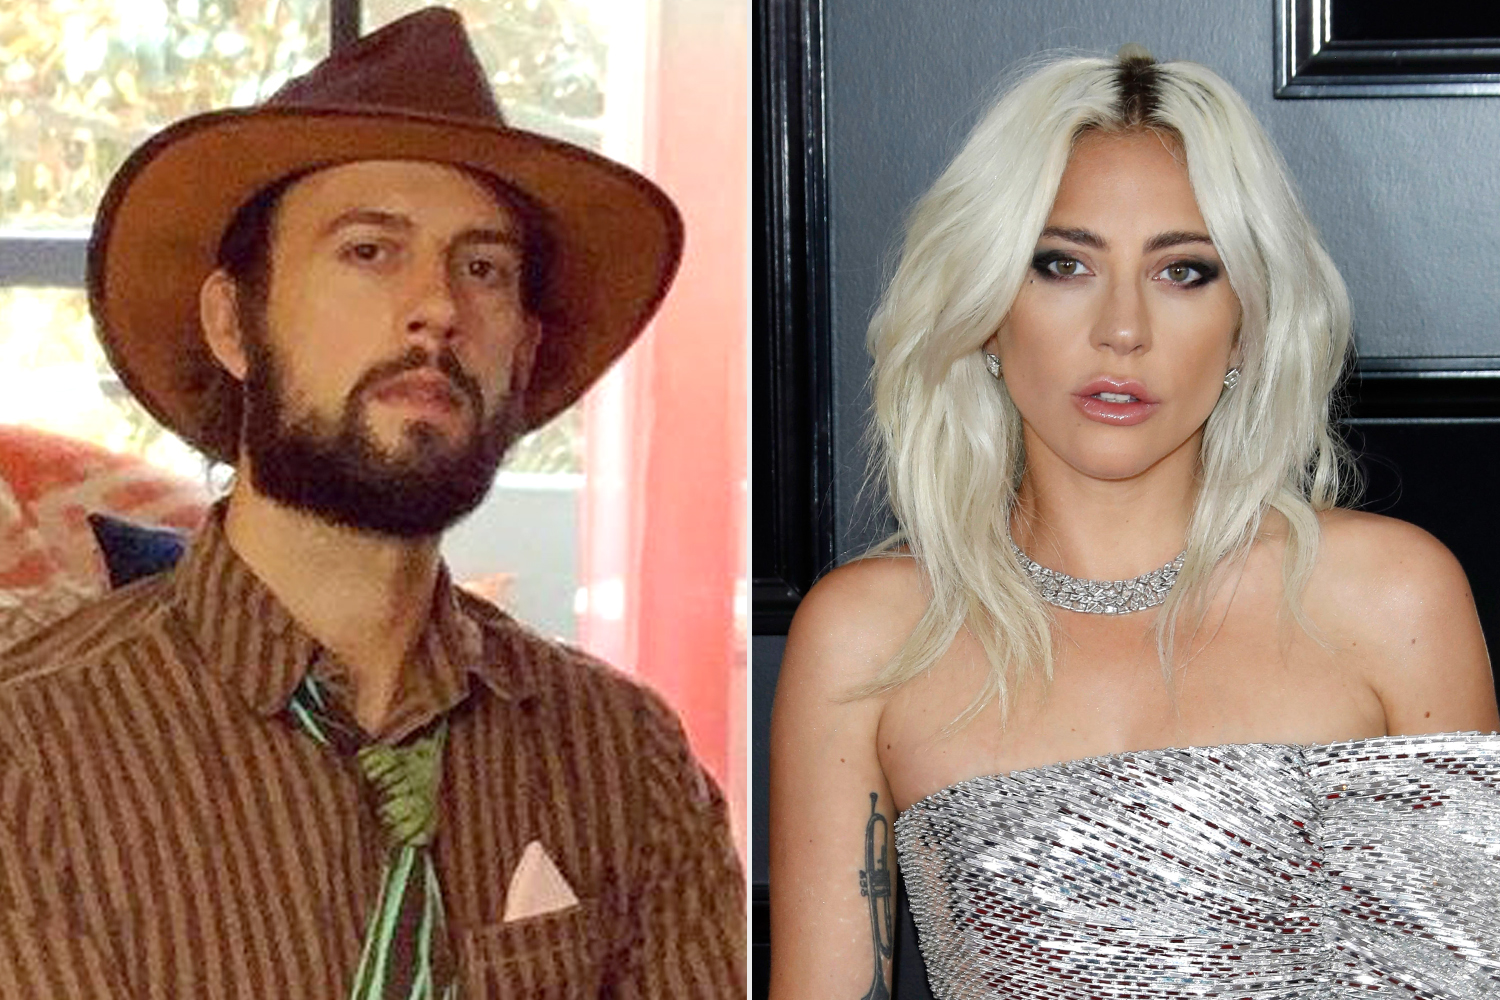 Lady Gaga's Dog Walker Ryan Fischer Reveals His Lung Collapsed Several Times After Shooting